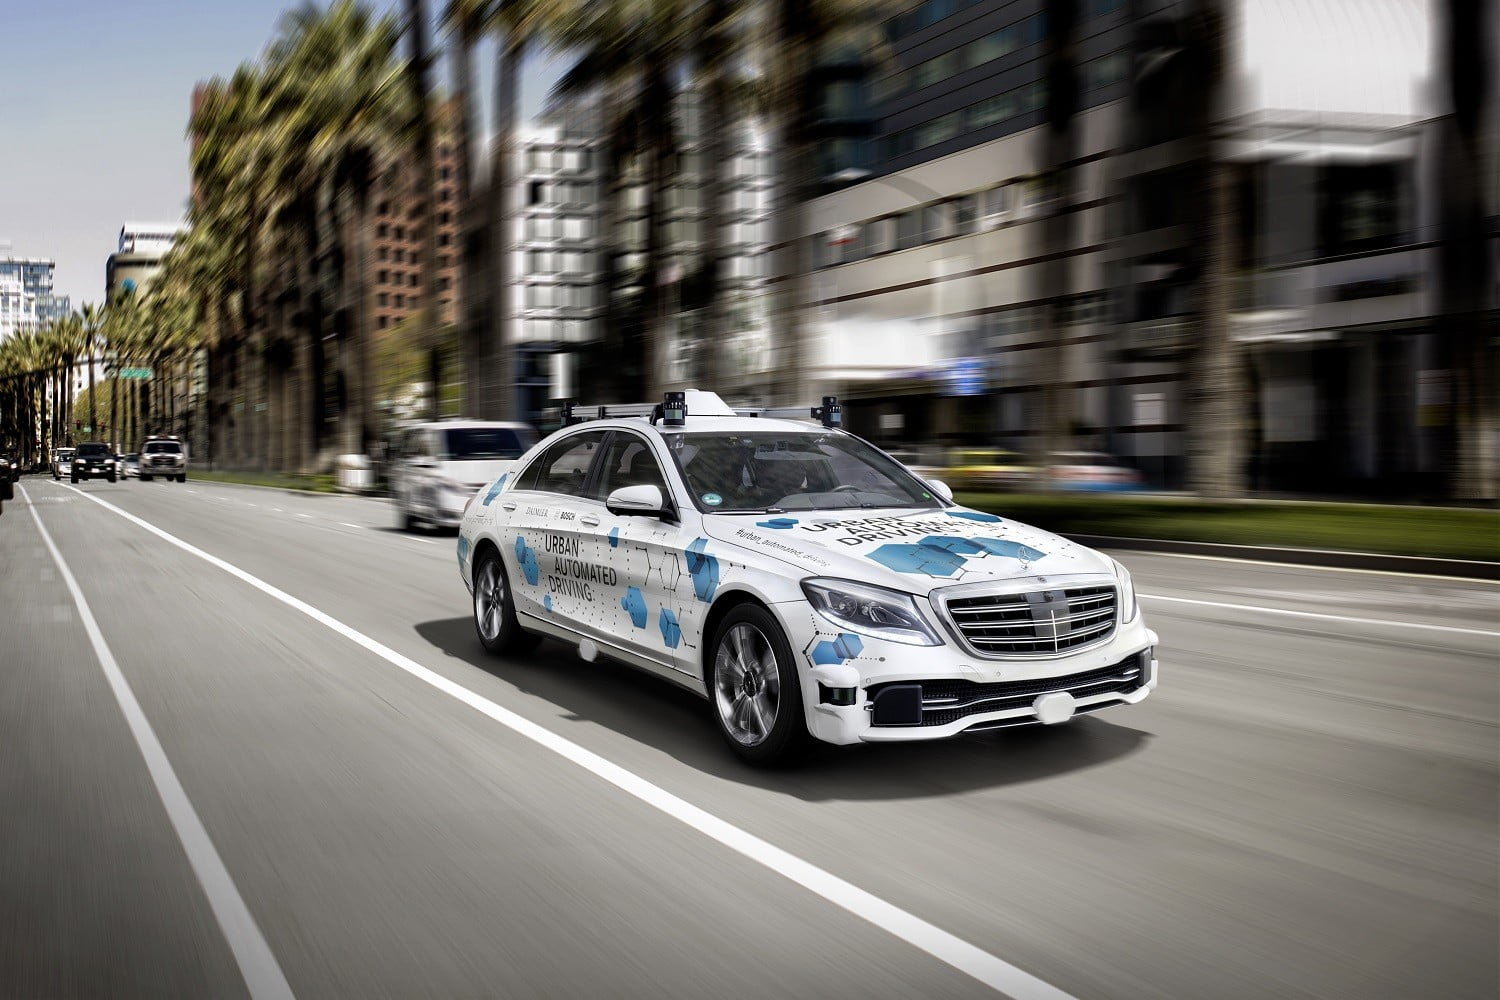 Here's what Bosch hopes to learn from deploying autonomous cars in San Jose